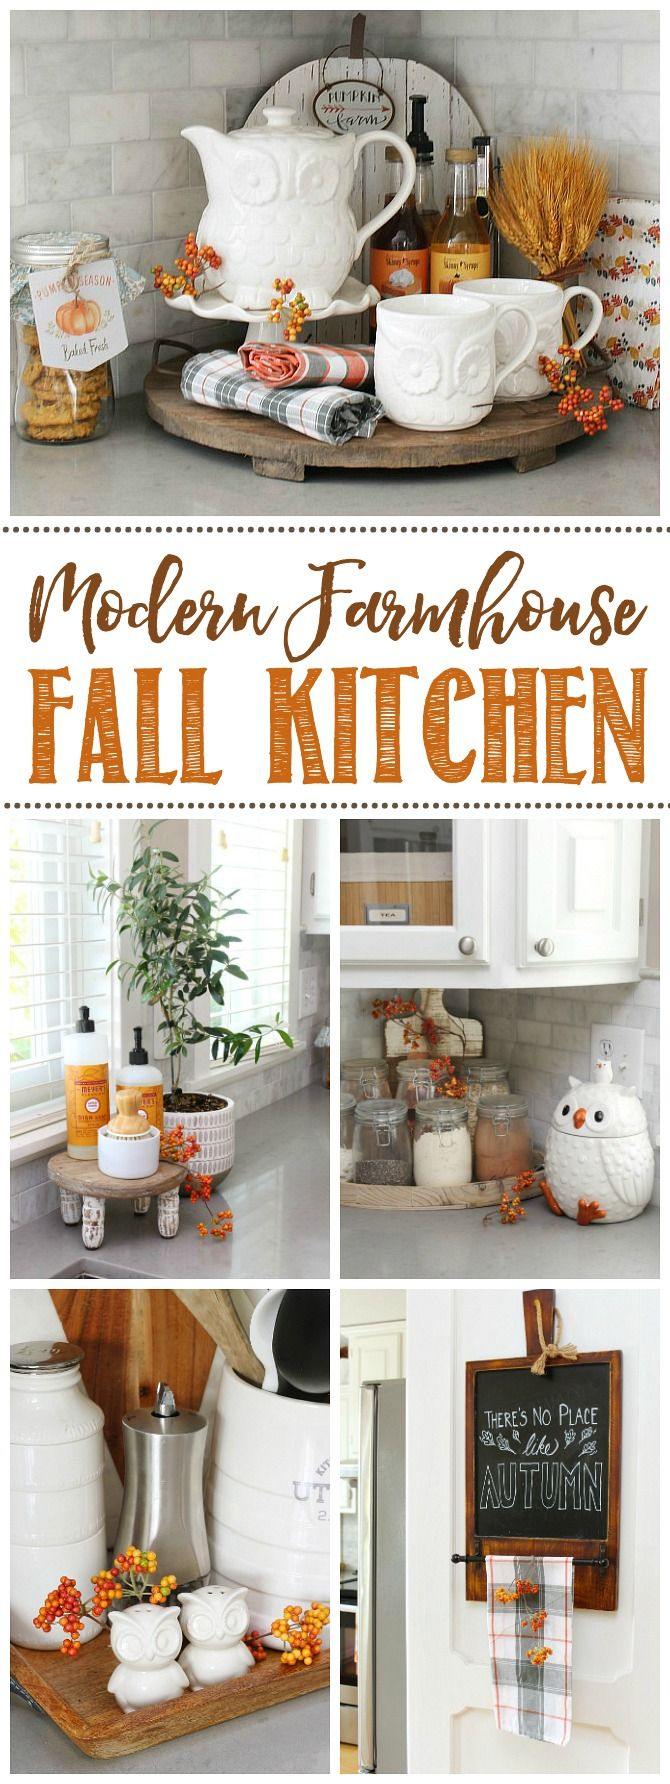 Fall Kitchen Home Tour